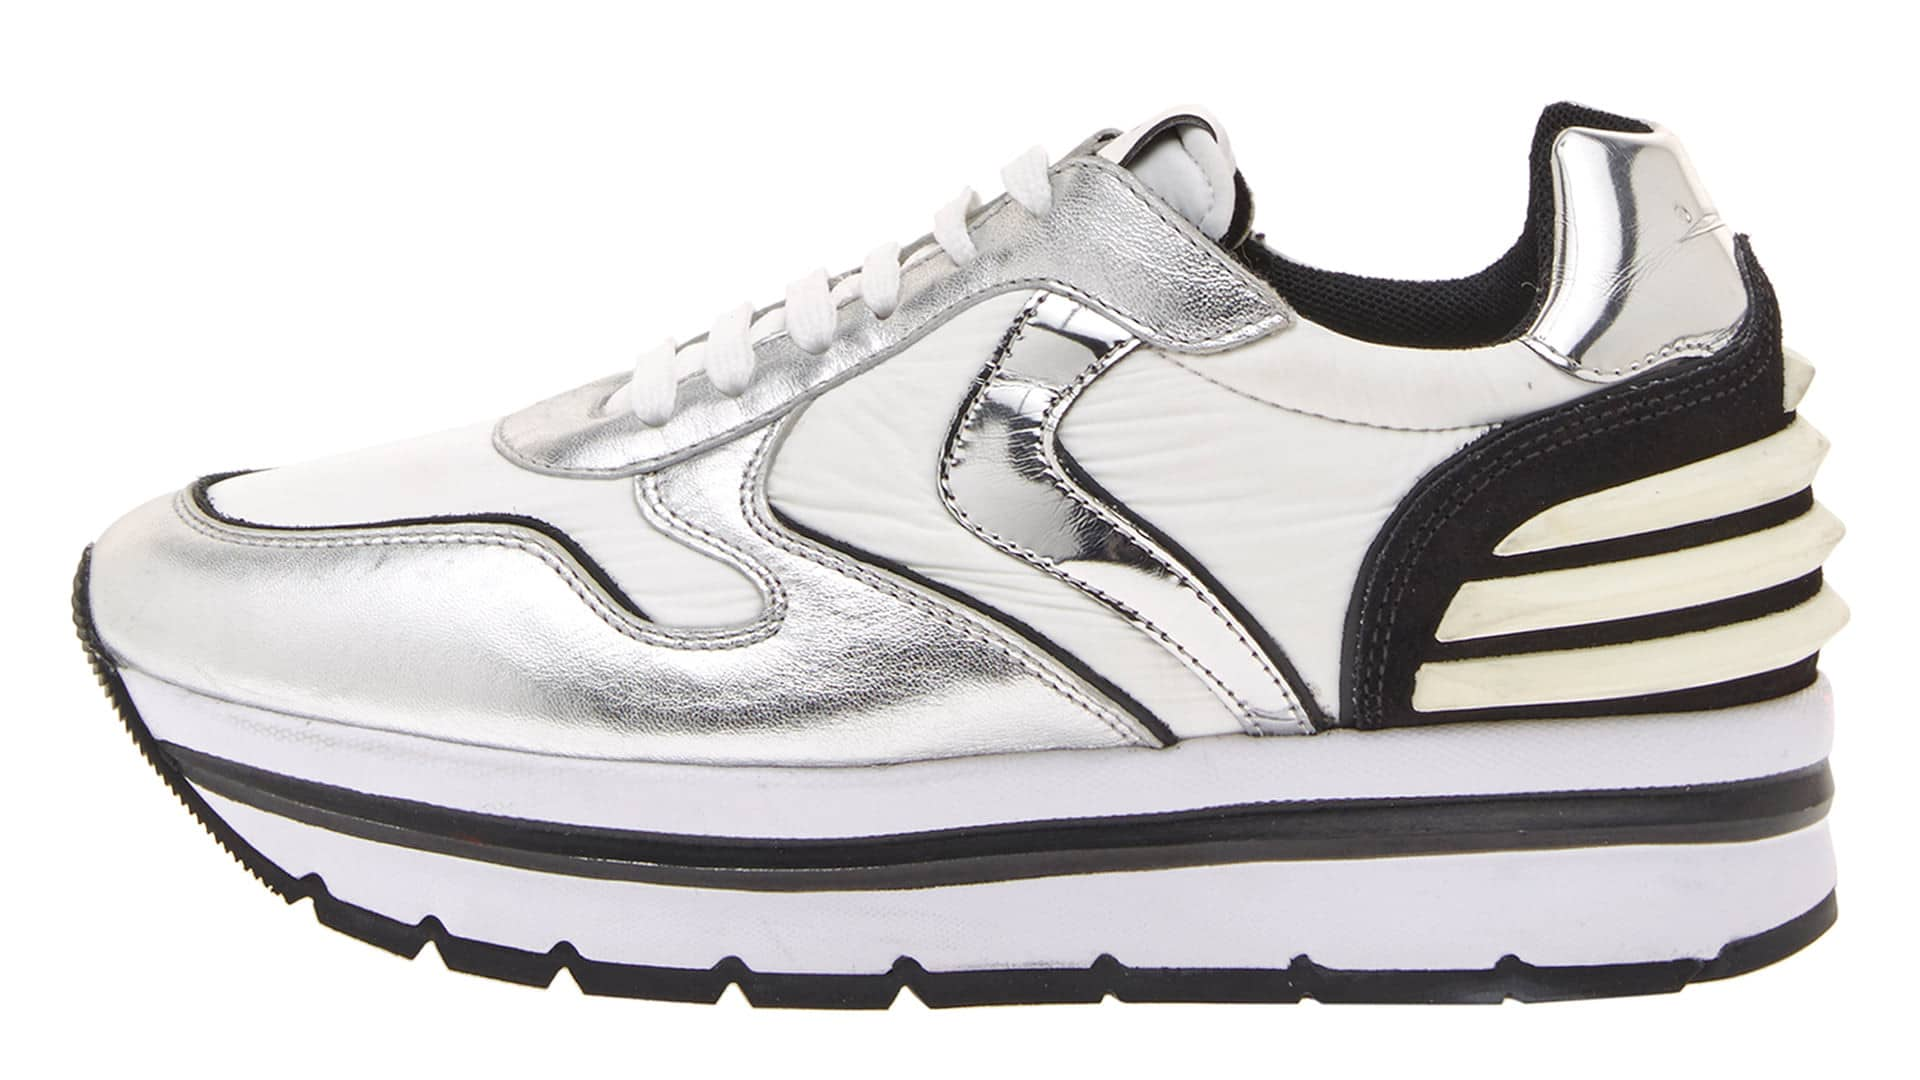 MAY POWER - SNEAKERS IN PELLE E TESSUTO - ARGENTO/NERO